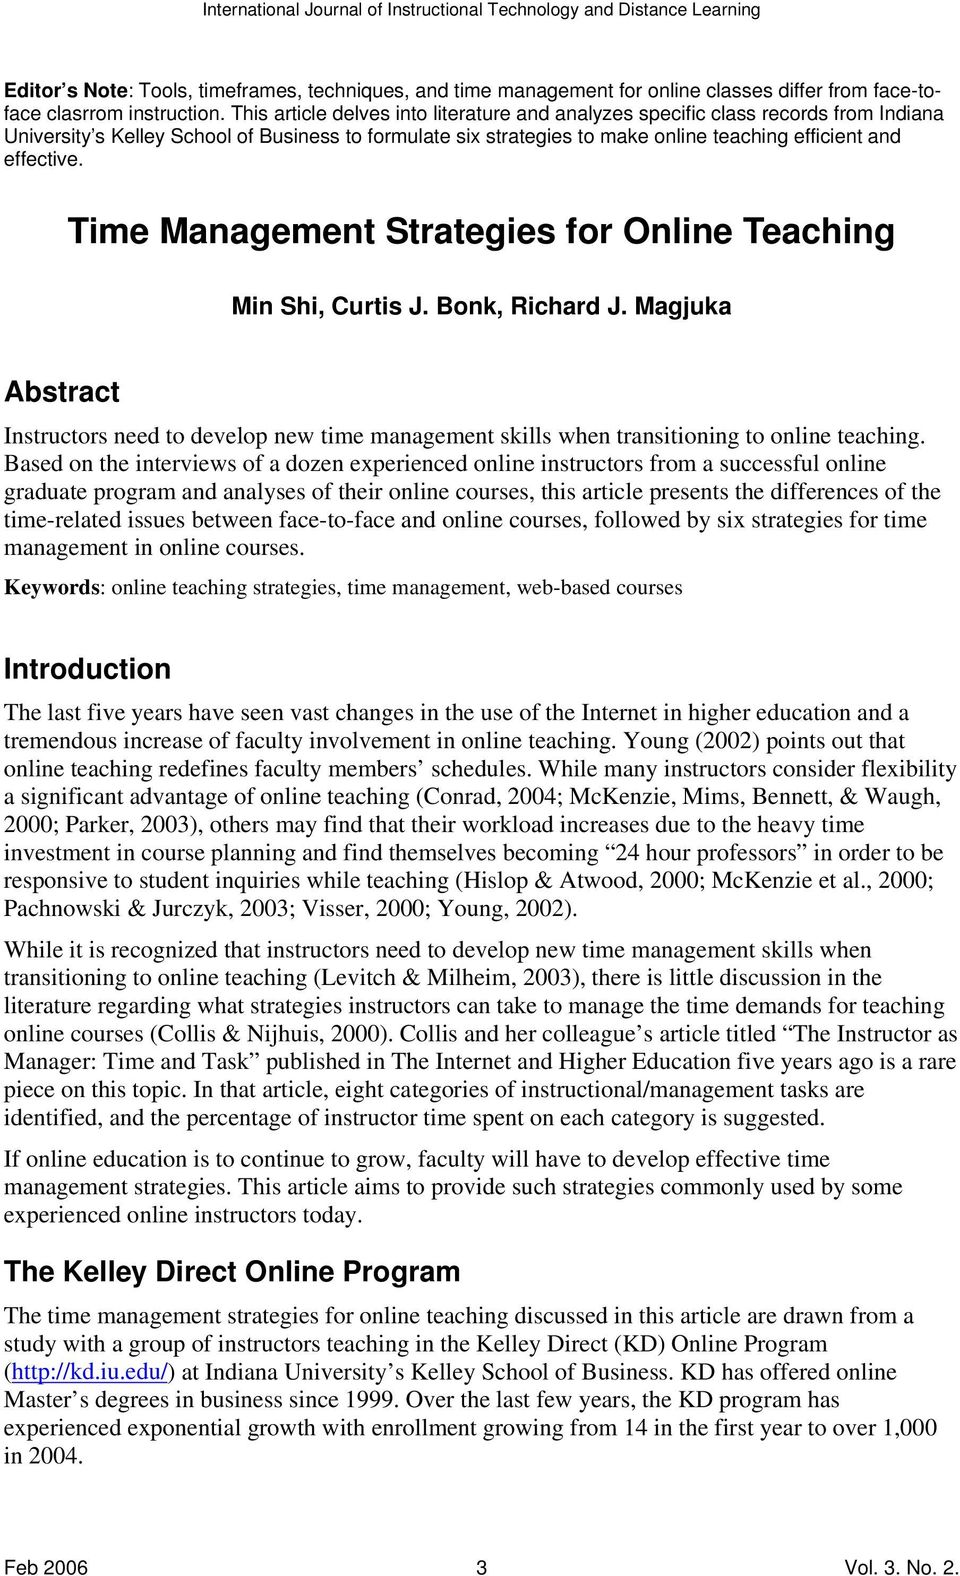 Time Management Strategies for Online Teaching Min Shi, Curtis J. Bonk, Richard J. Magjuka Abstract Instructors need to develop new time management skills when transitioning to online teaching.